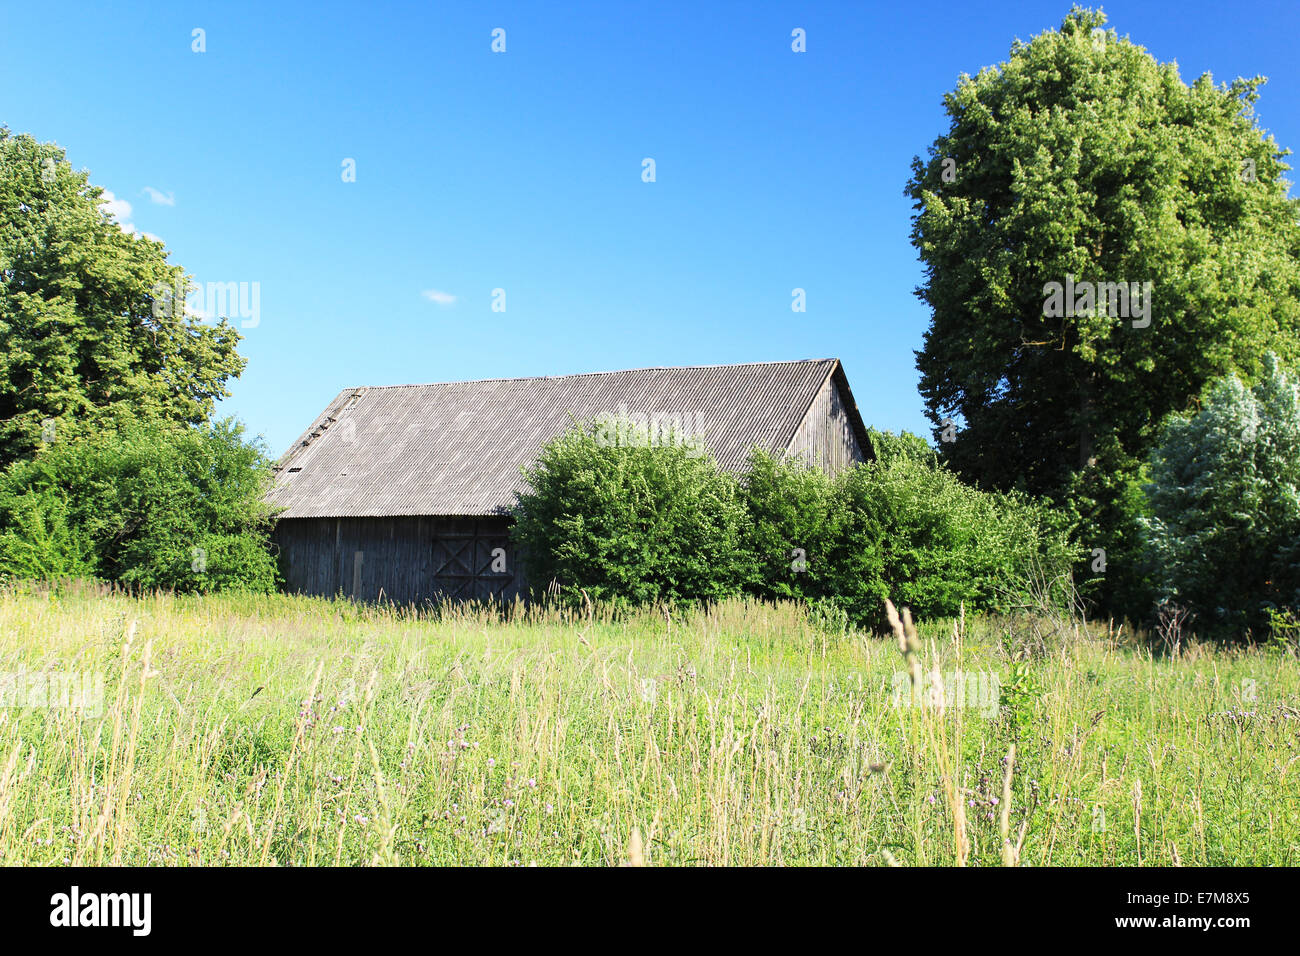 An abandoned house in the field - Stock Image